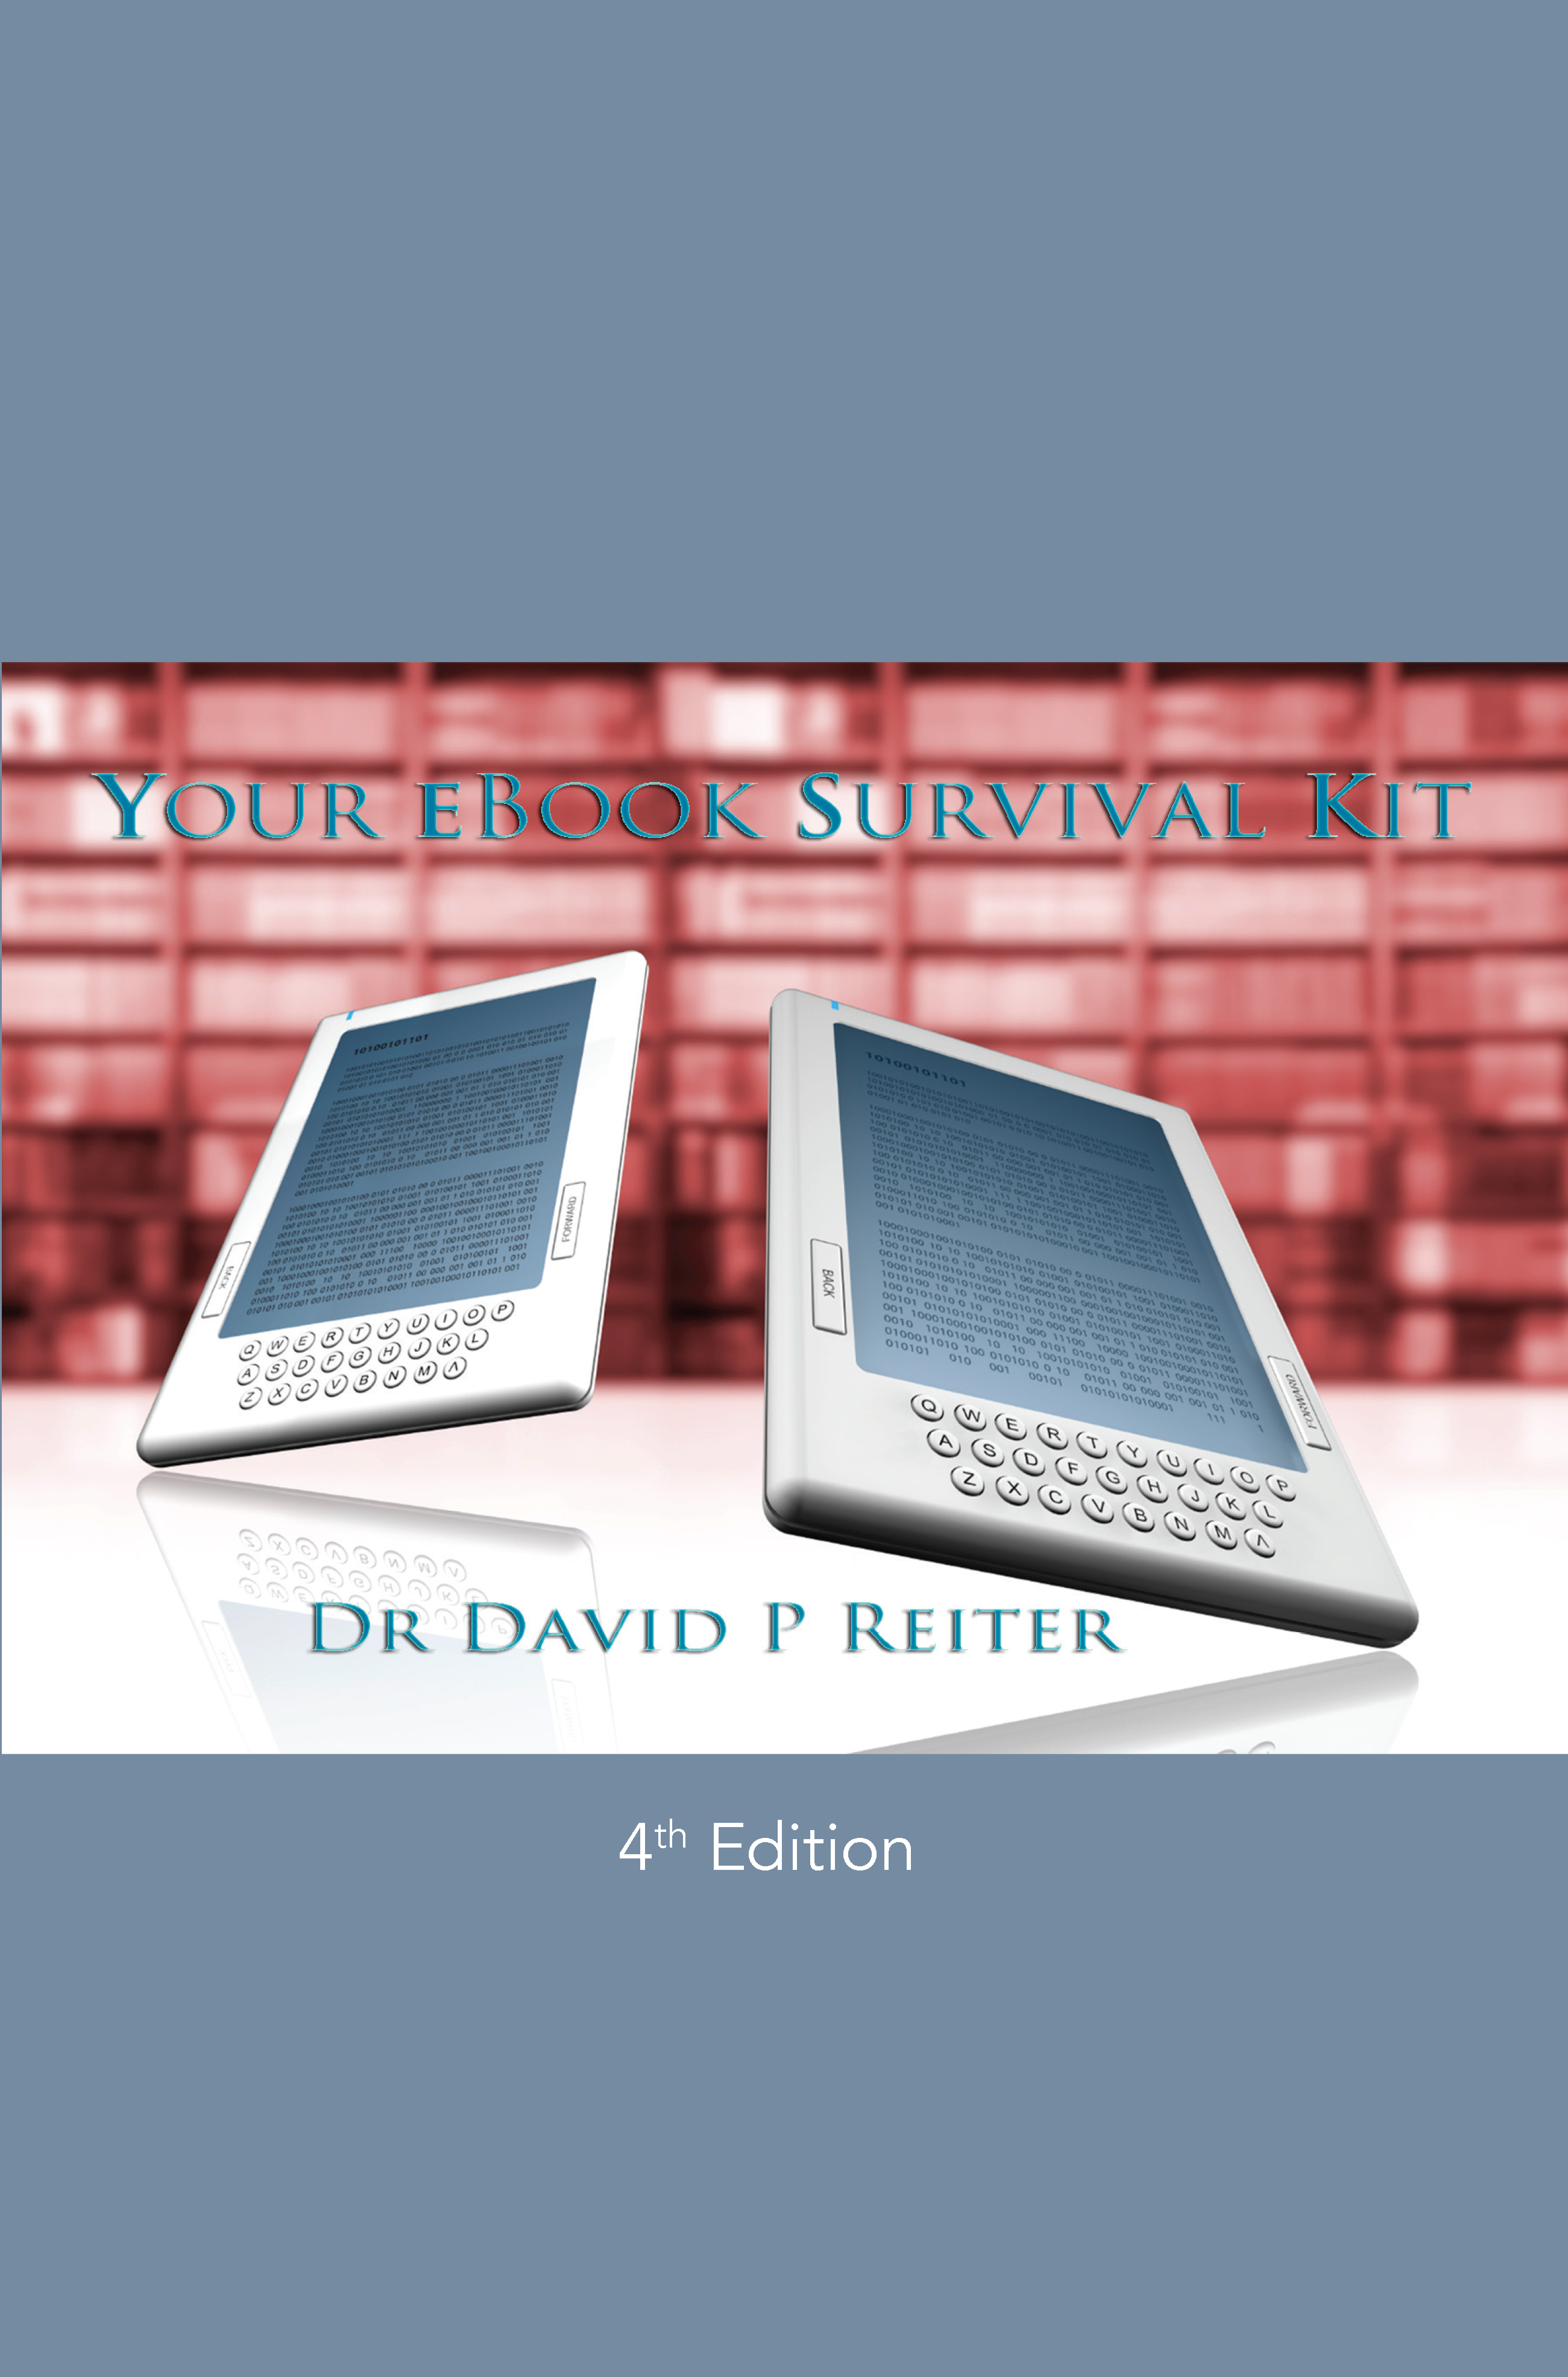 Your eBook Kit, 4th Ed